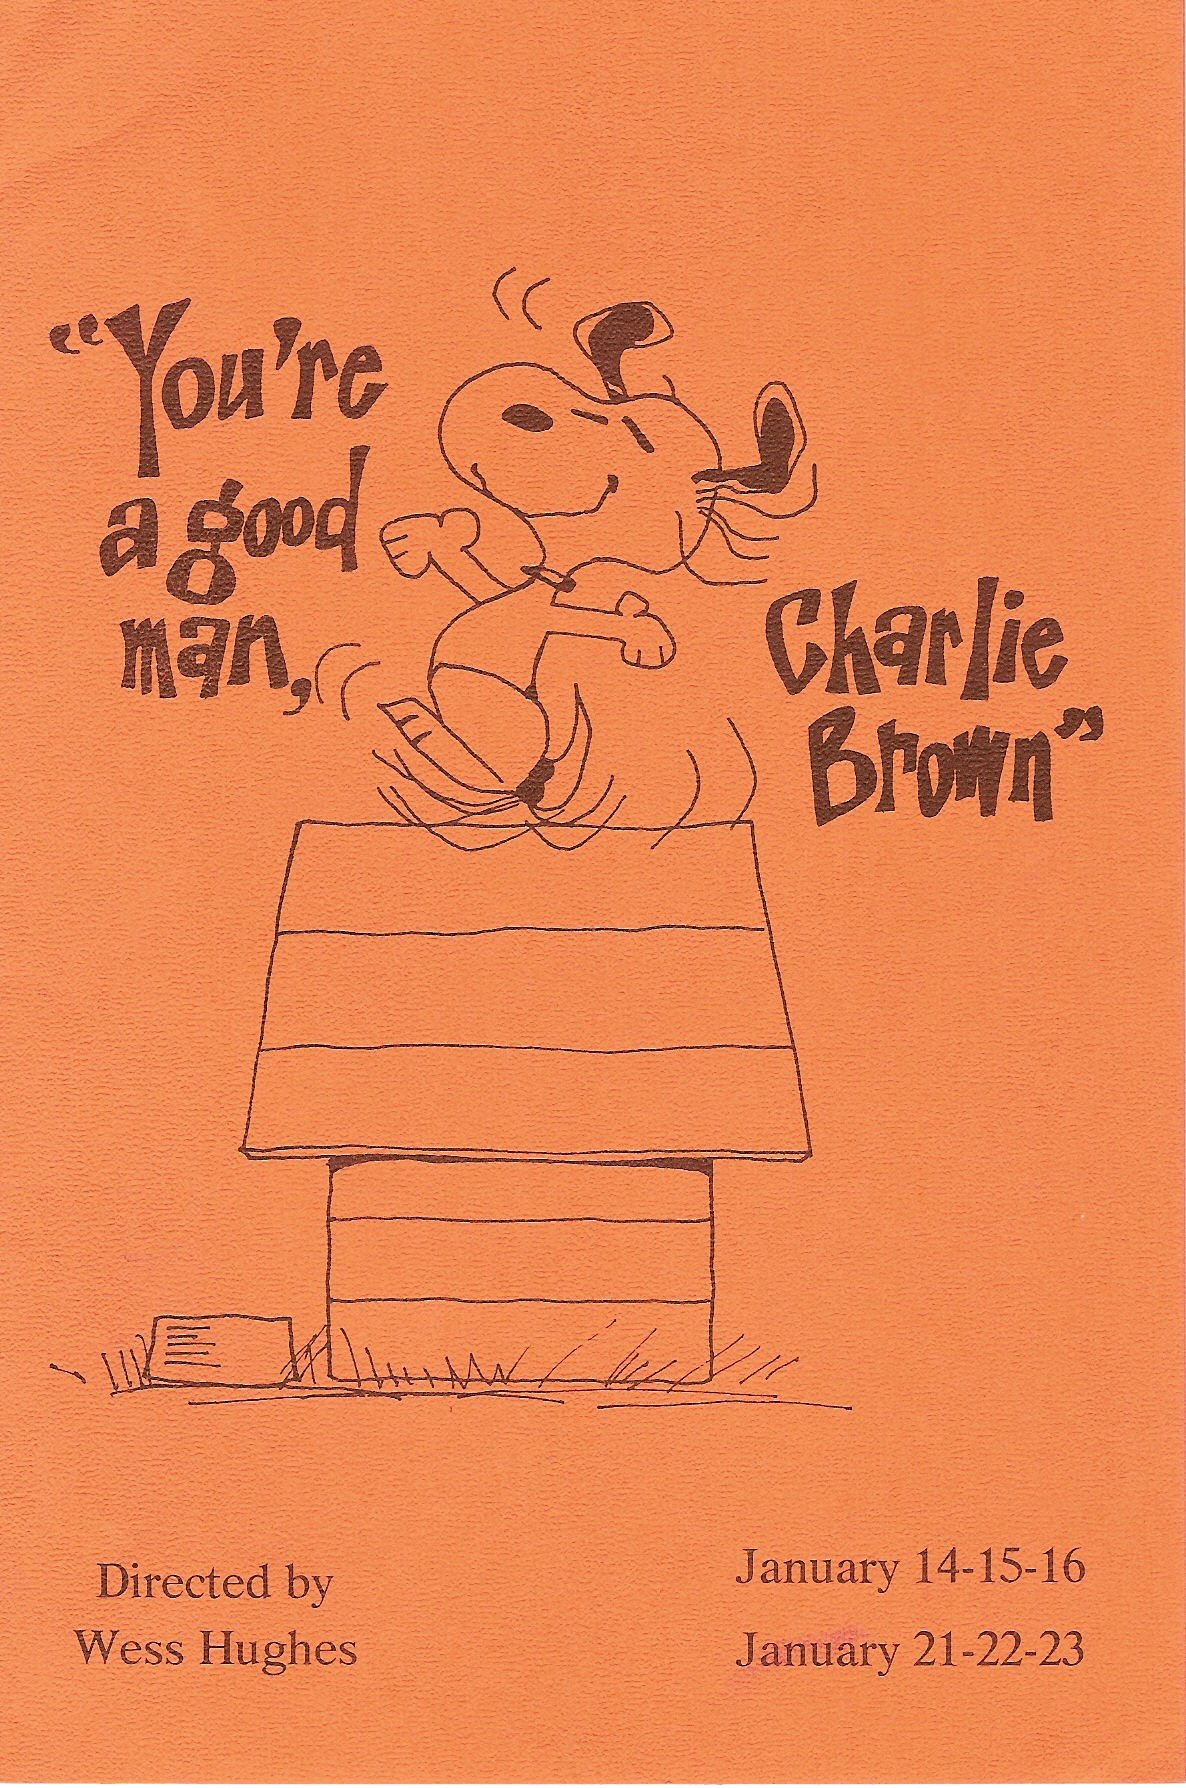 youre a good man charlie brown.jpg